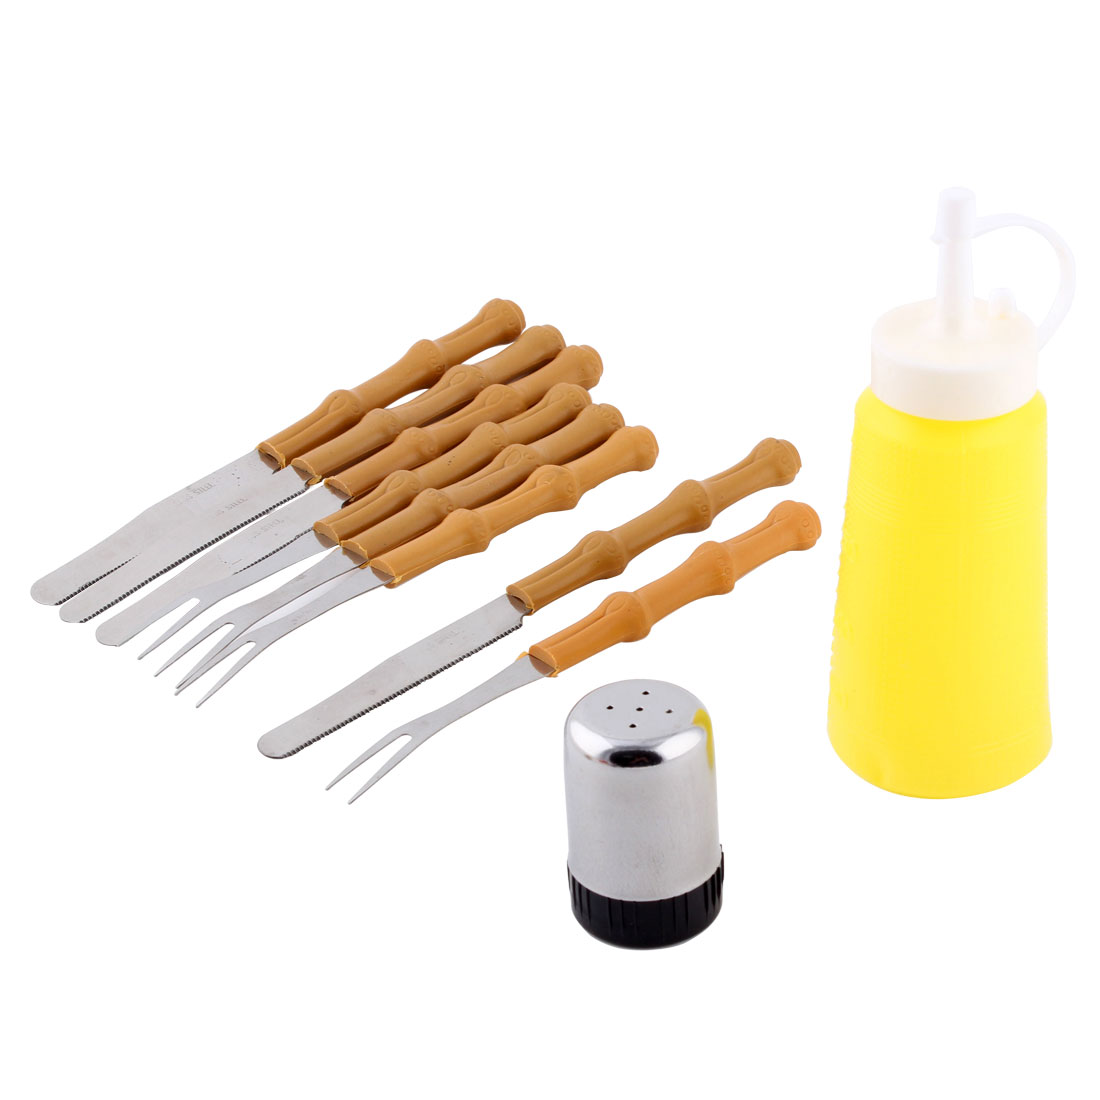 Plastic Handle Stainless Steel Cooking Barbecue Utensil BBQ Tool Set 10 in 1